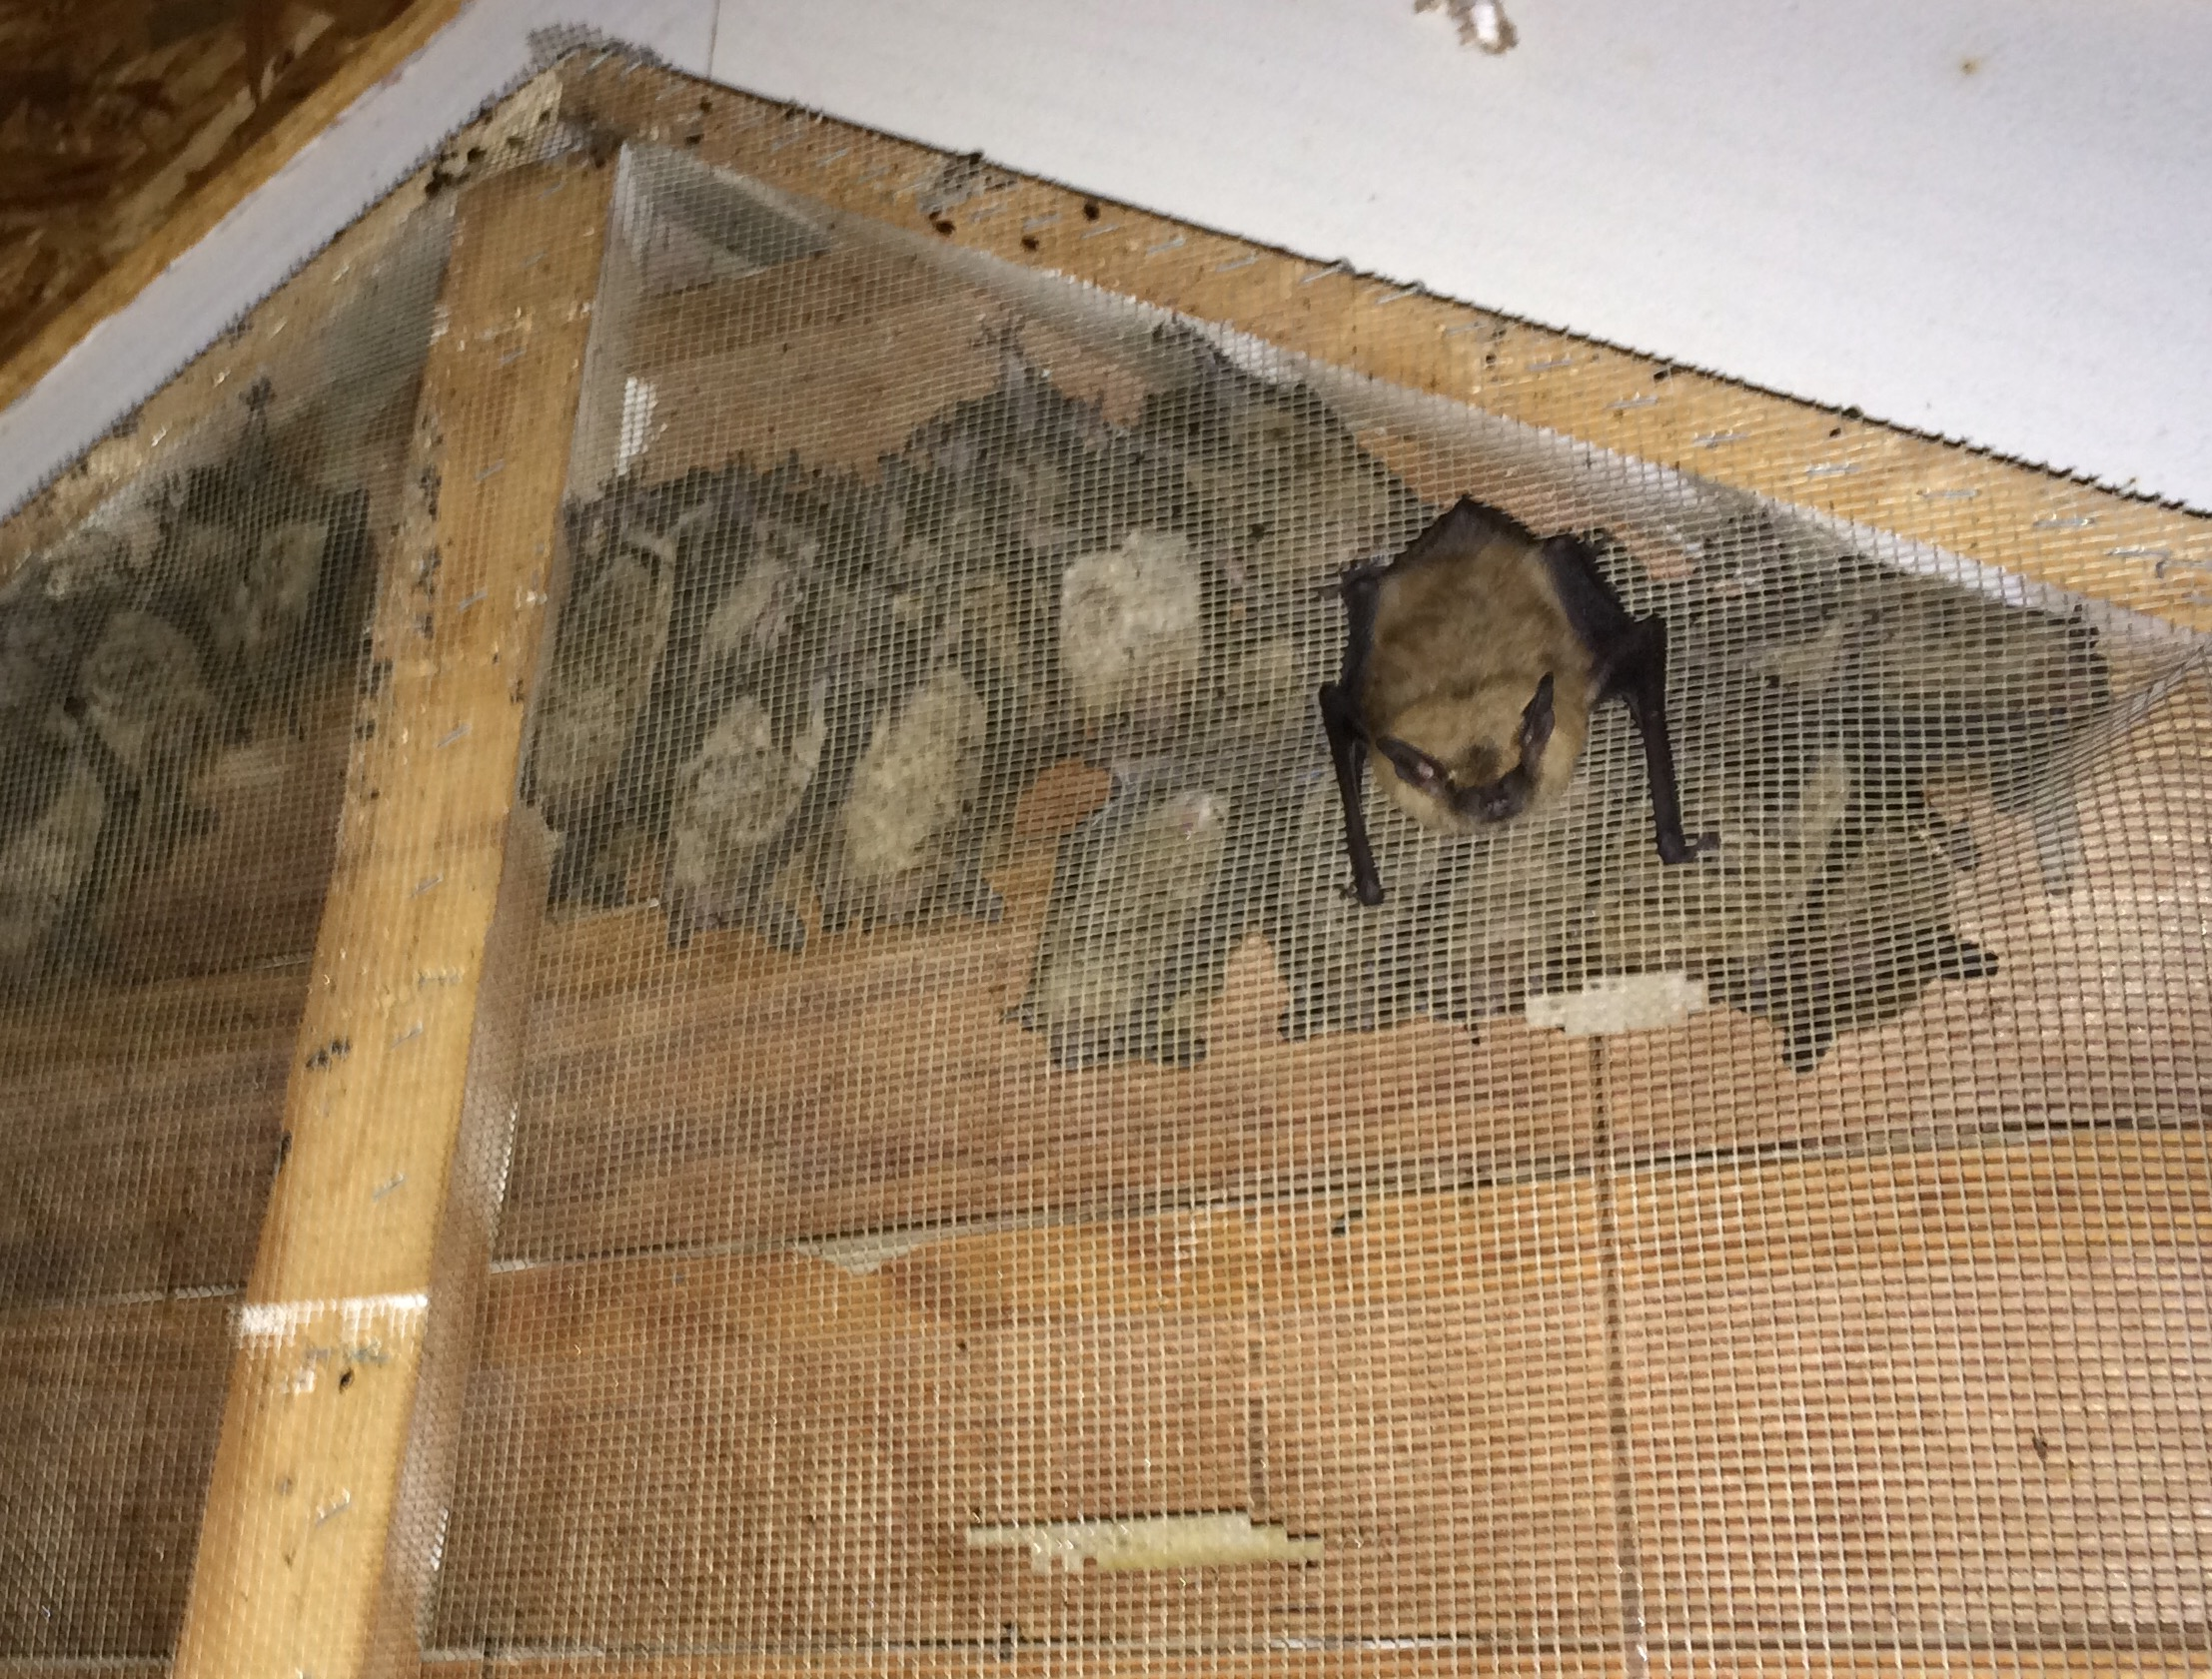 Bat Inside Gable Meshing